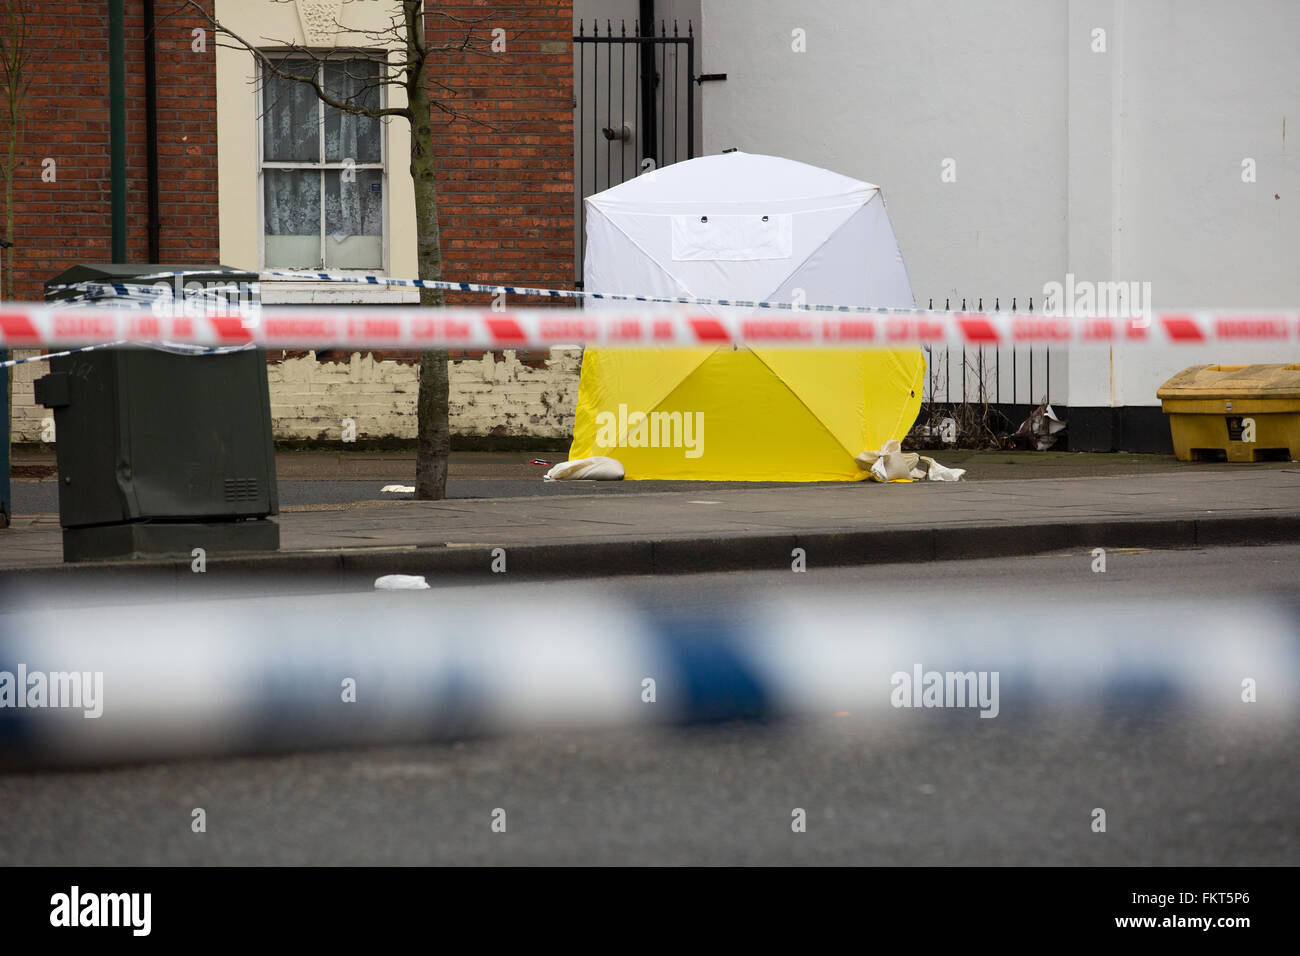 Forensic tent erected during an investigation into an murder - Stock Image